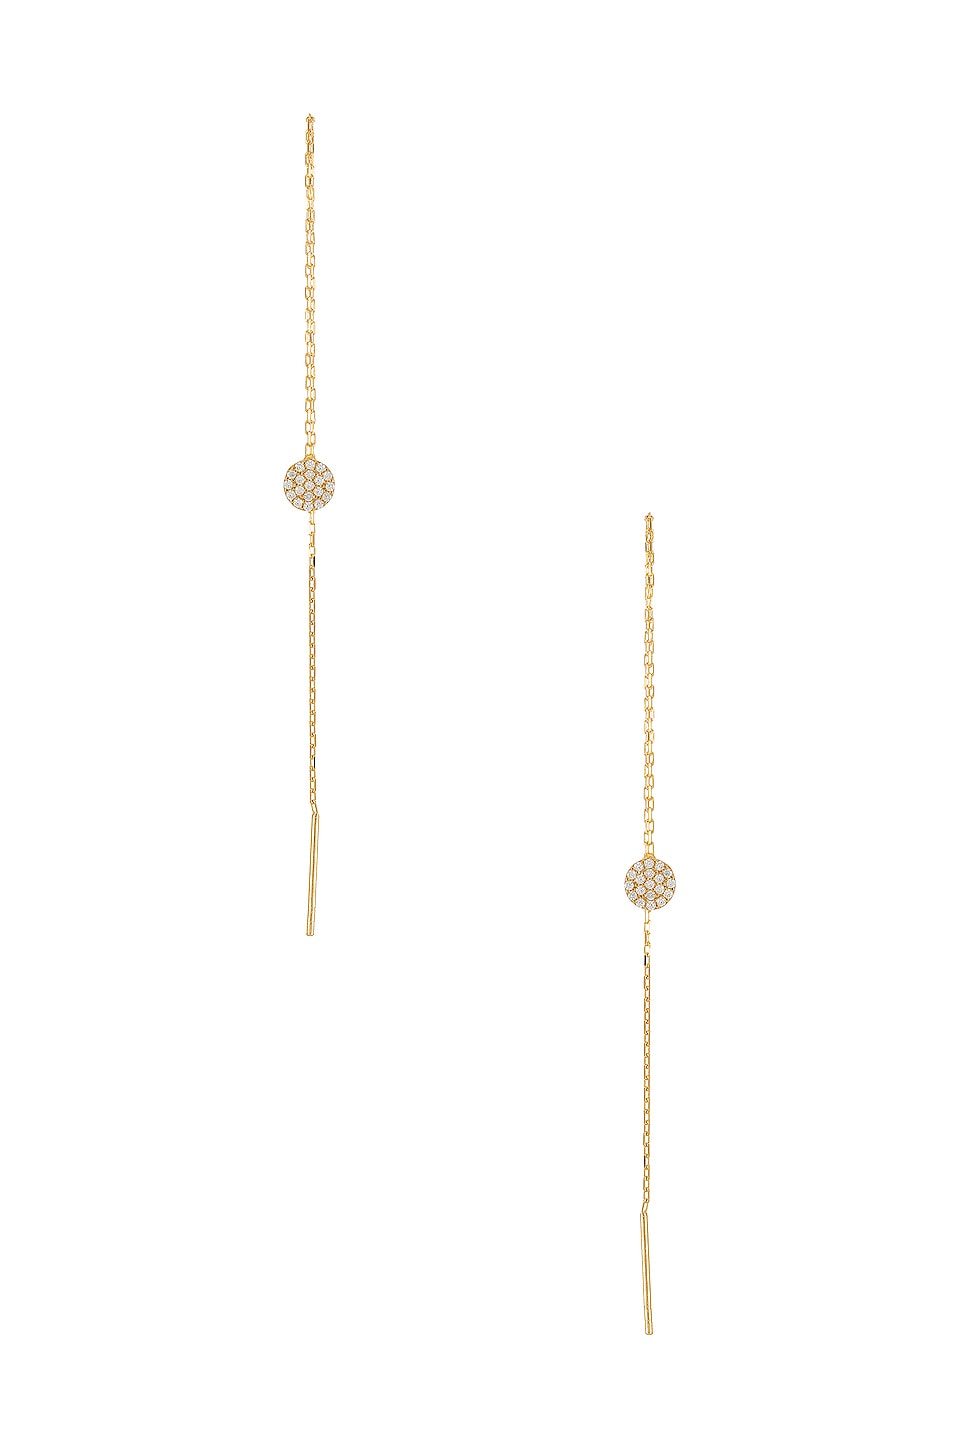 Natalie B Jewelry Iris Pave Disc Threader in Gold